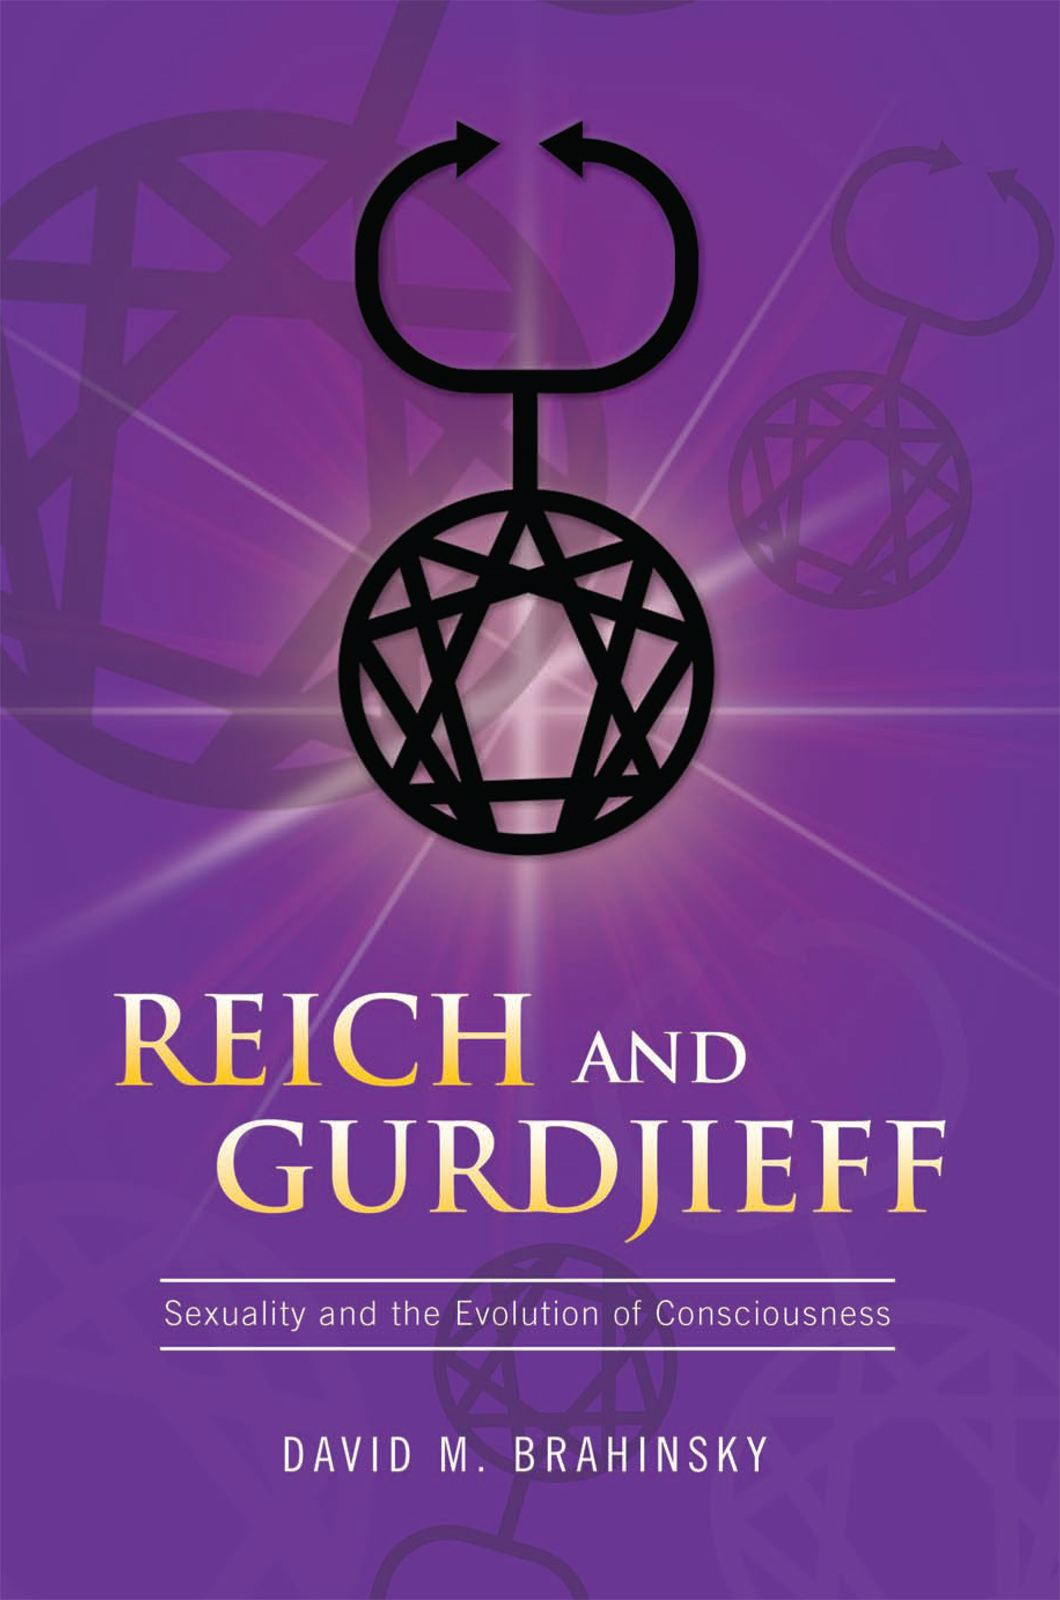 Reich and Gurdjieff